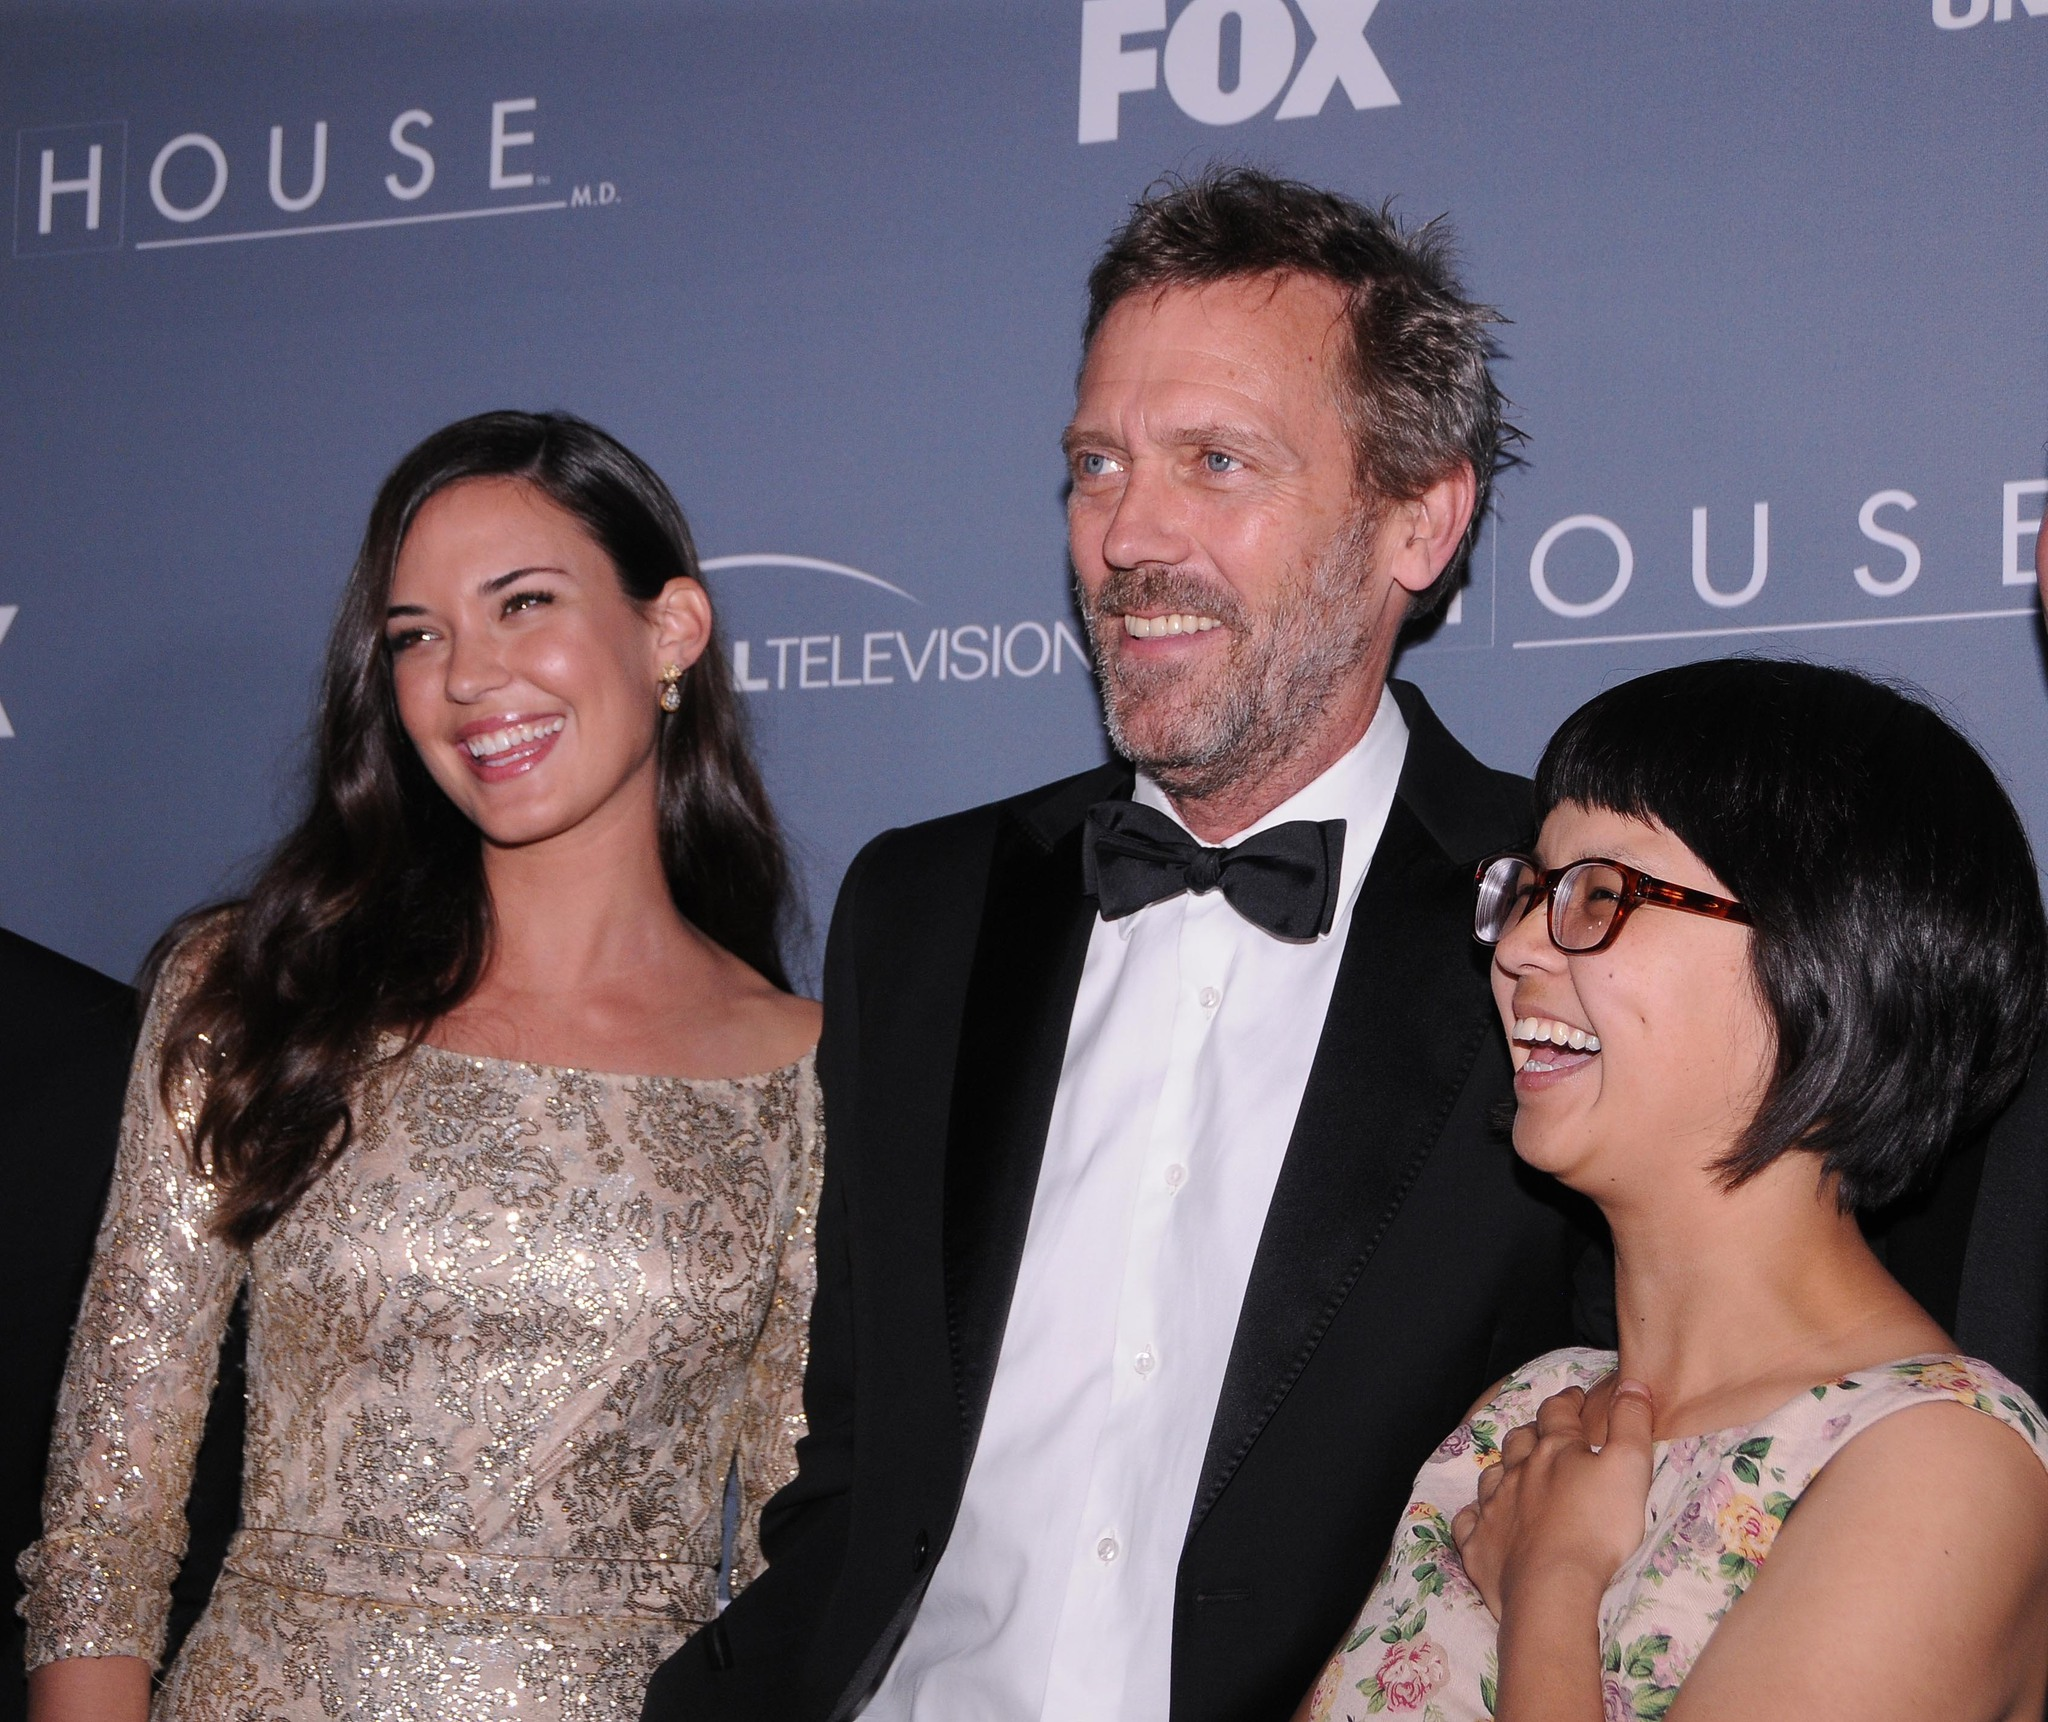 House-M-D-Series-Wrap-Party-April-20-2012-hugh-laurie-30554580-2048-1722.jpg